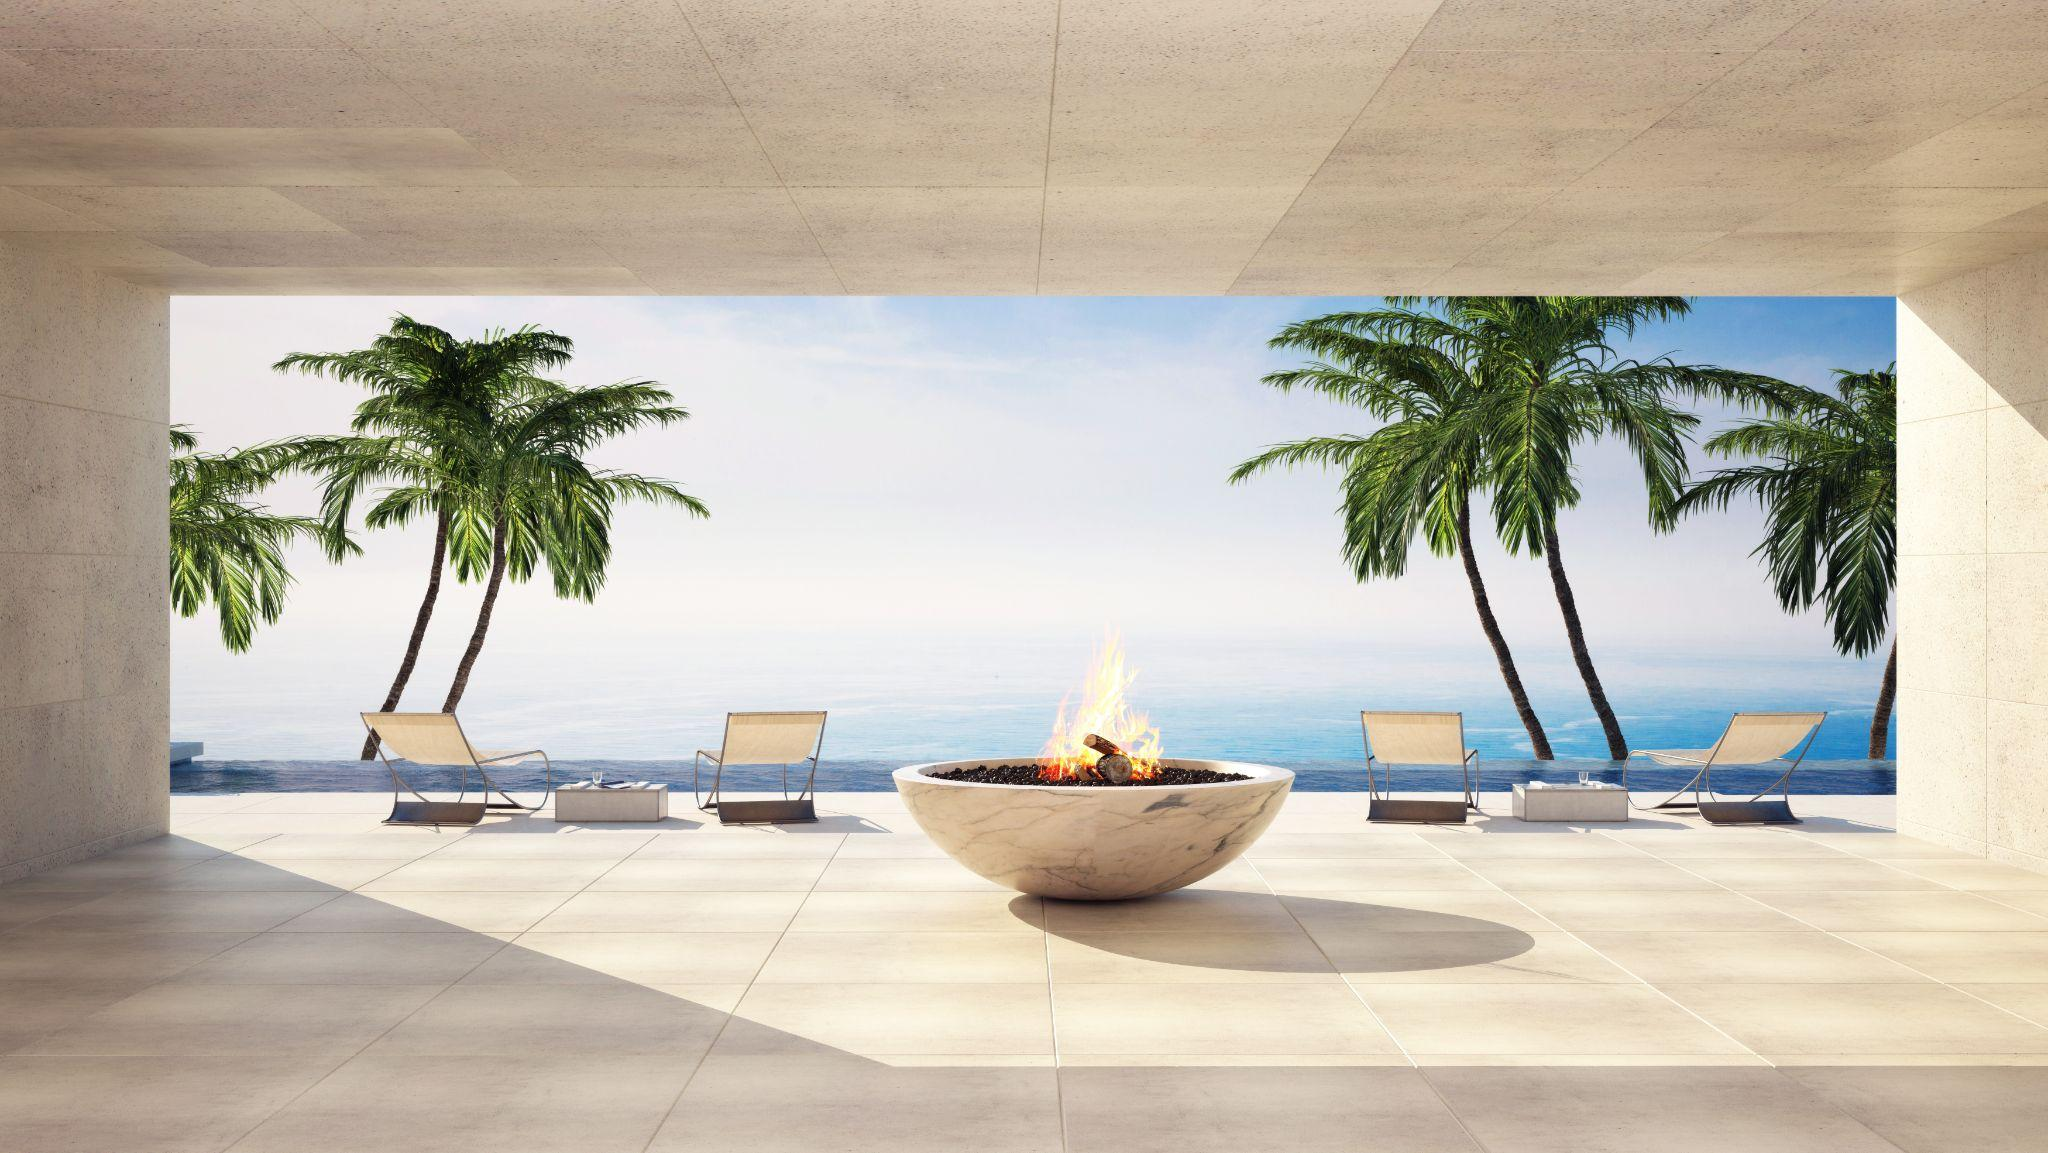 Open patio in a luxury villa overlooking the sea with palm trees and feature burning flame